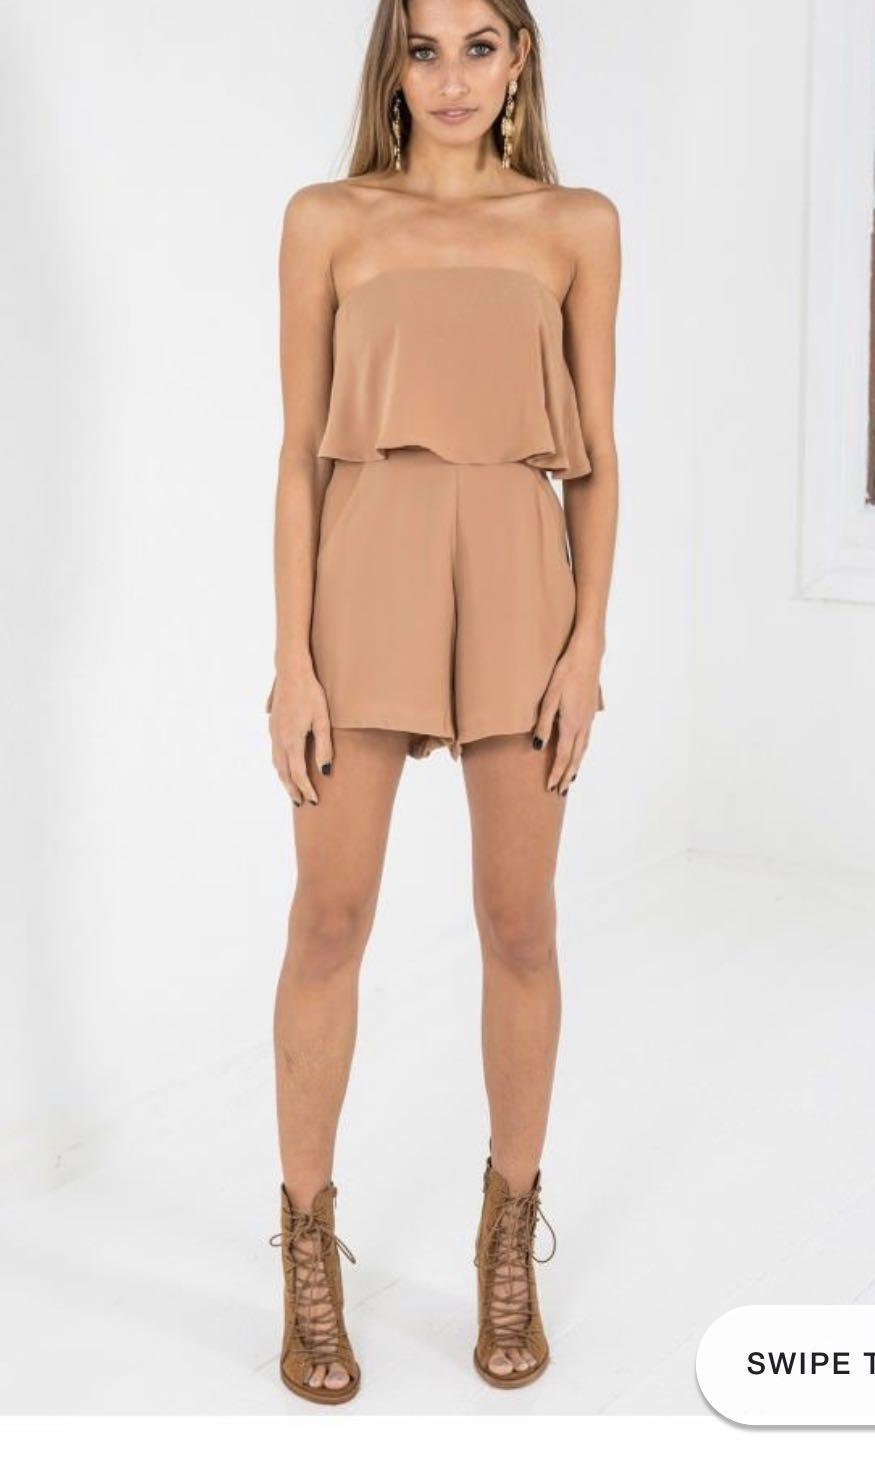 Dolly girl strapless playsuit/romper in brown/camel fits size 6-8